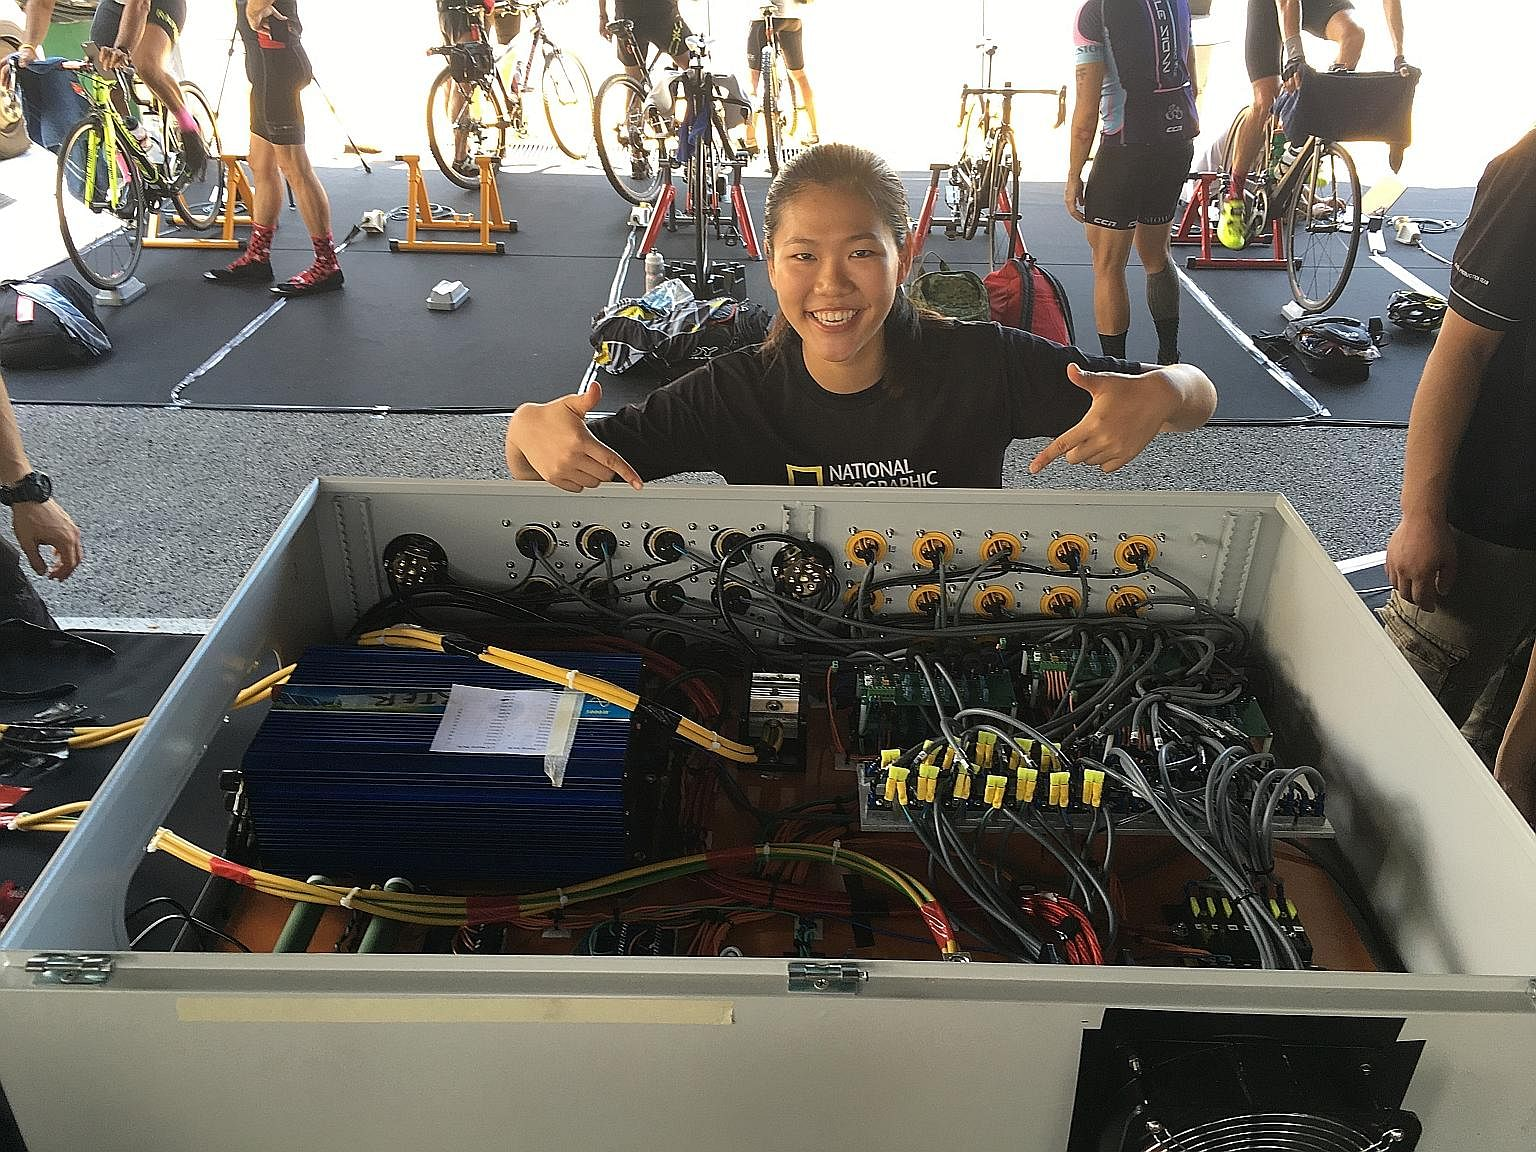 Ms Kwok built 27 electricity-generating bicycles for Cable Networks, National Geographic Channel and World Wide Fund for Nature for their Earth Day Event in Singapore in 2016.